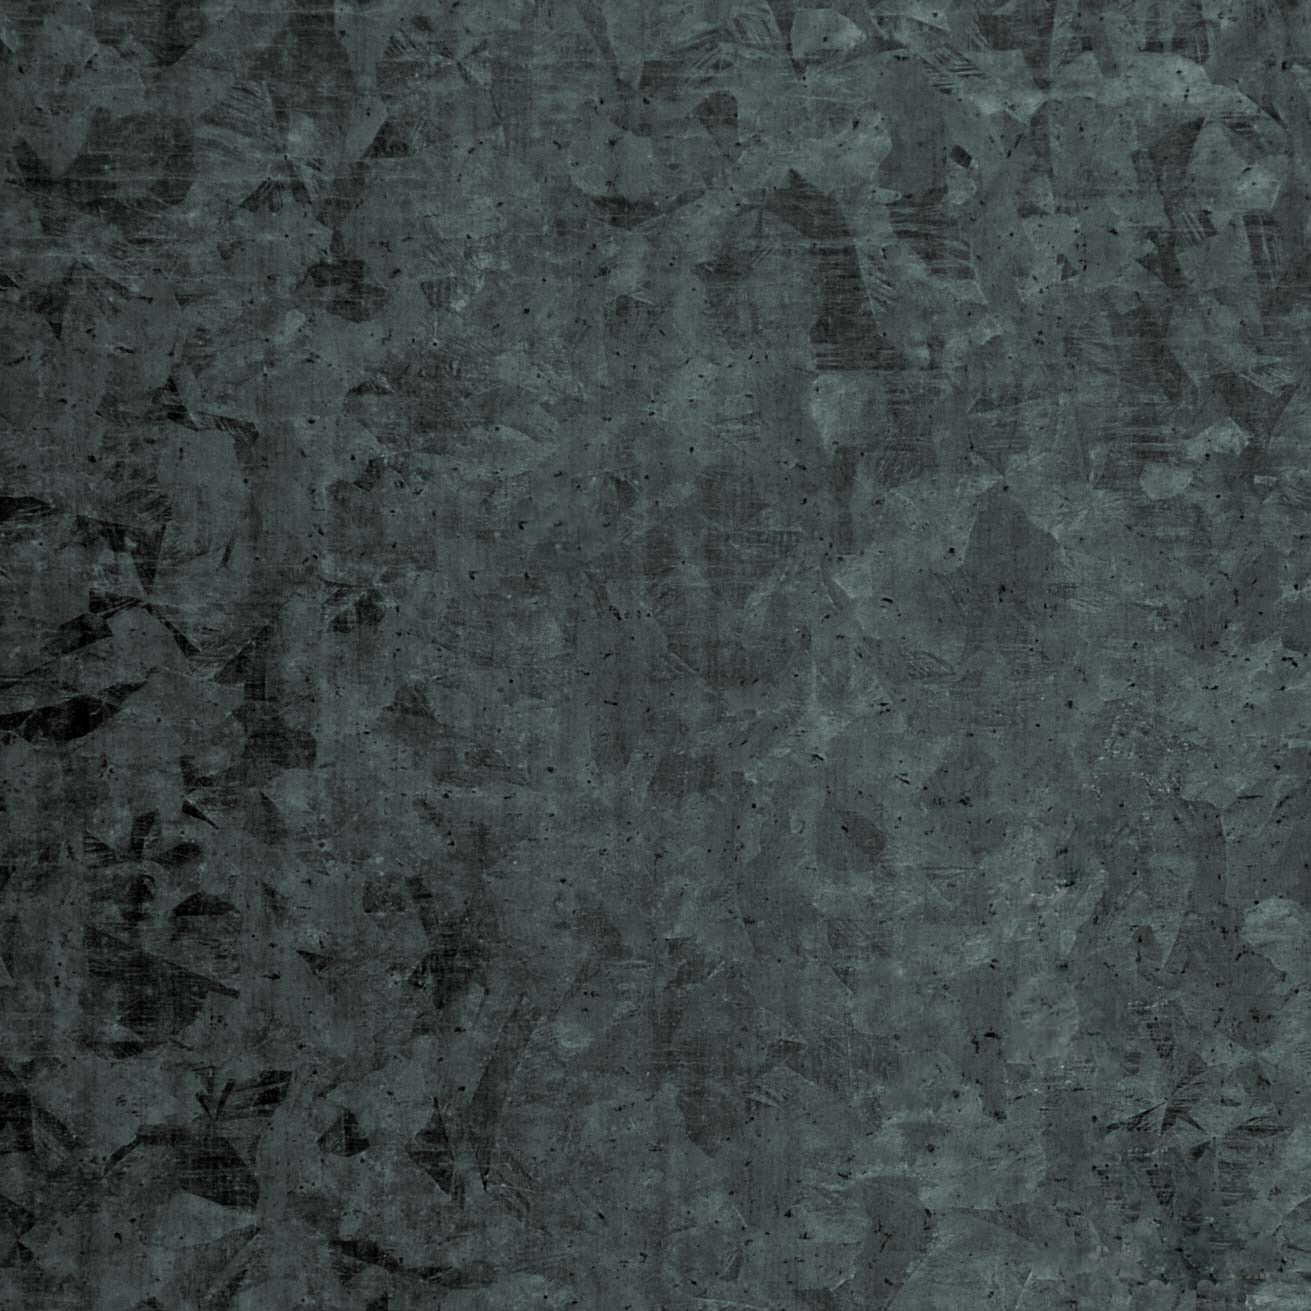 текстура цинка, цинк, металл, zinc texture background, metal